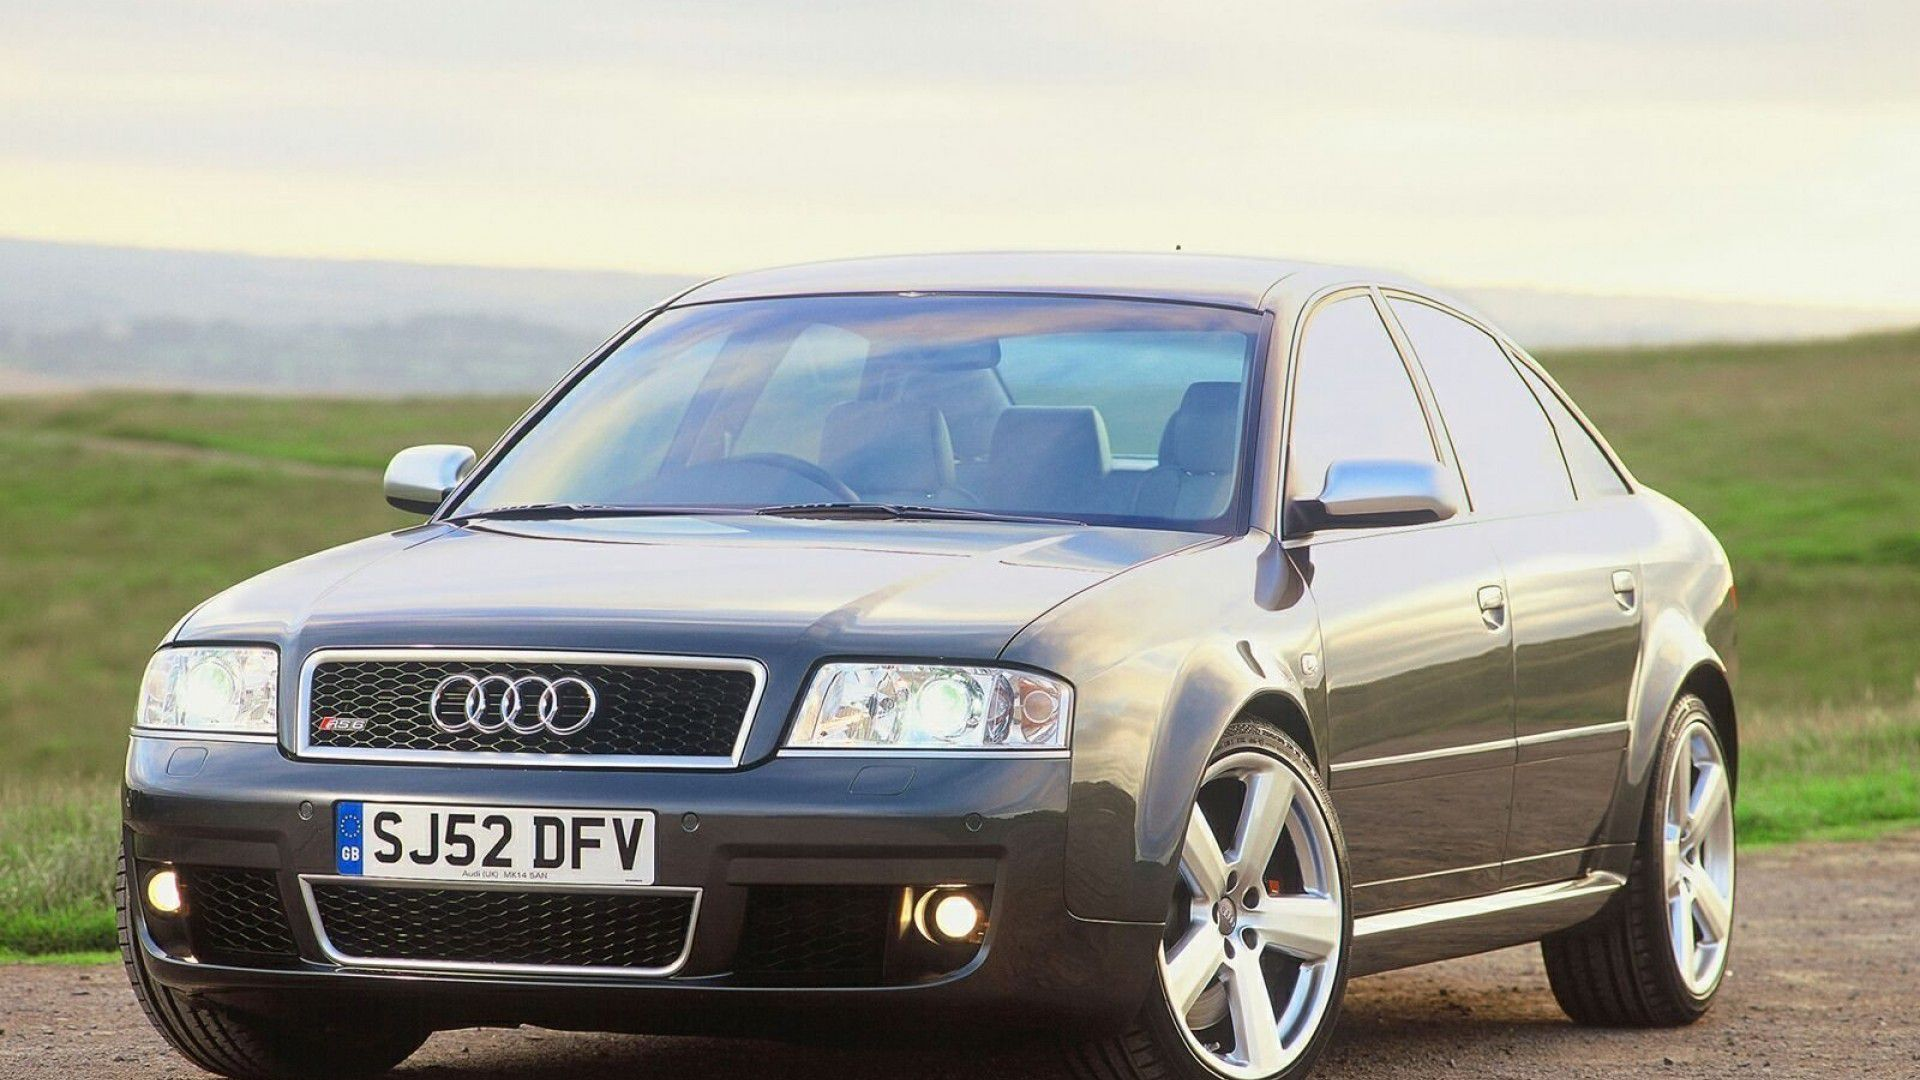 Audi RS 6 (2002 to 2004)